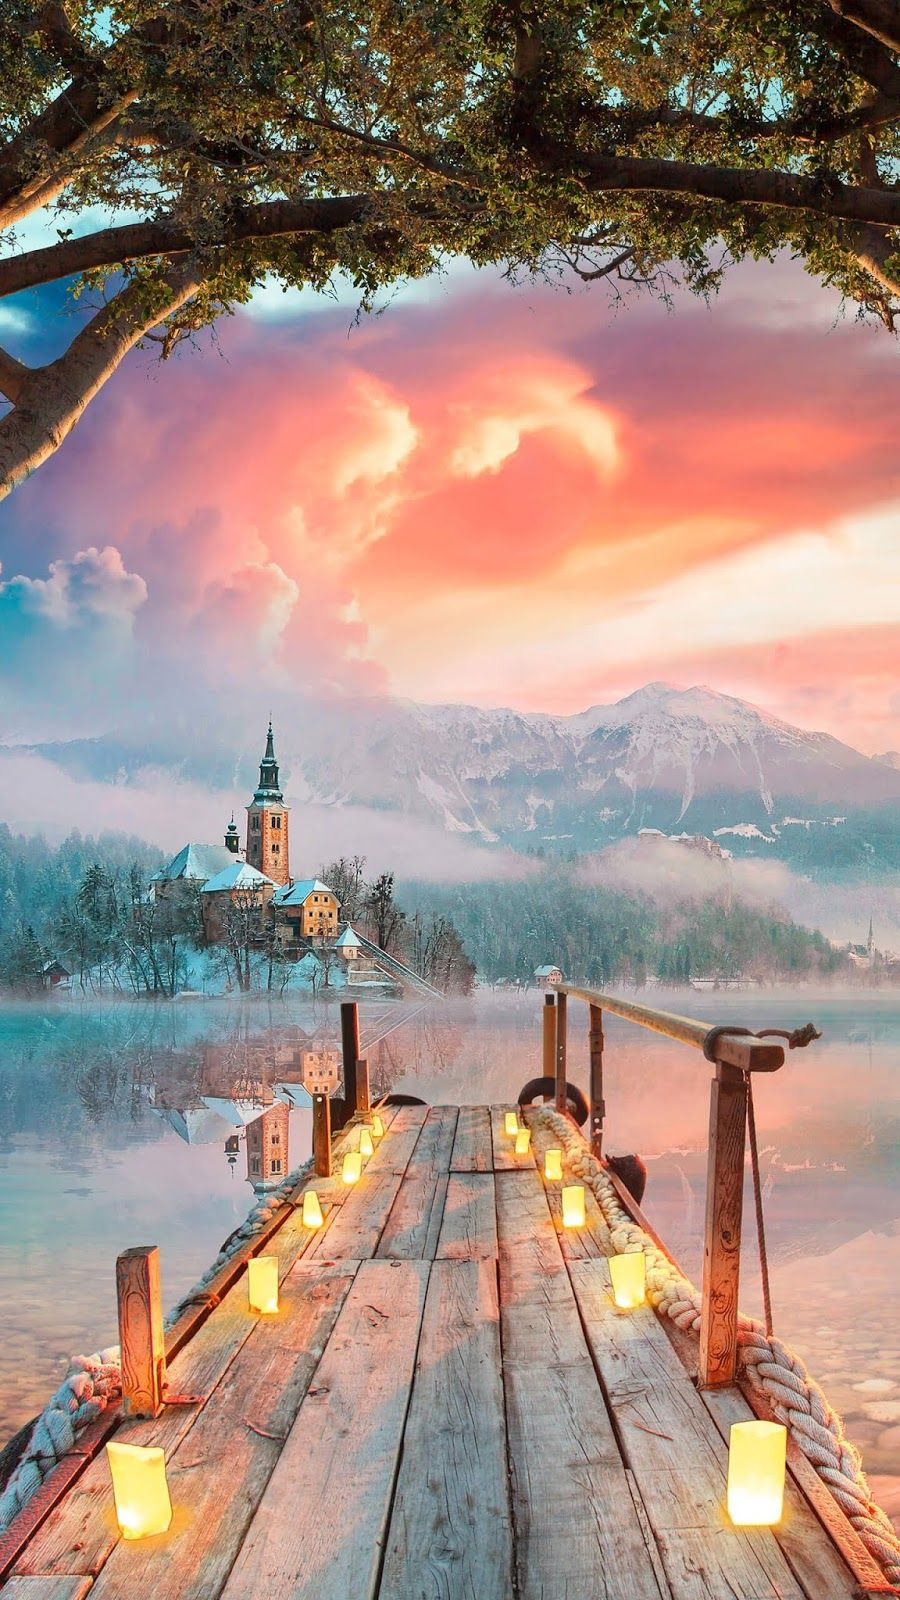 Enchanted Scenery Wallpaper Iphone Android Background Followme Scenery Wallpaper Scenery Beautiful Wallpapers For Iphone